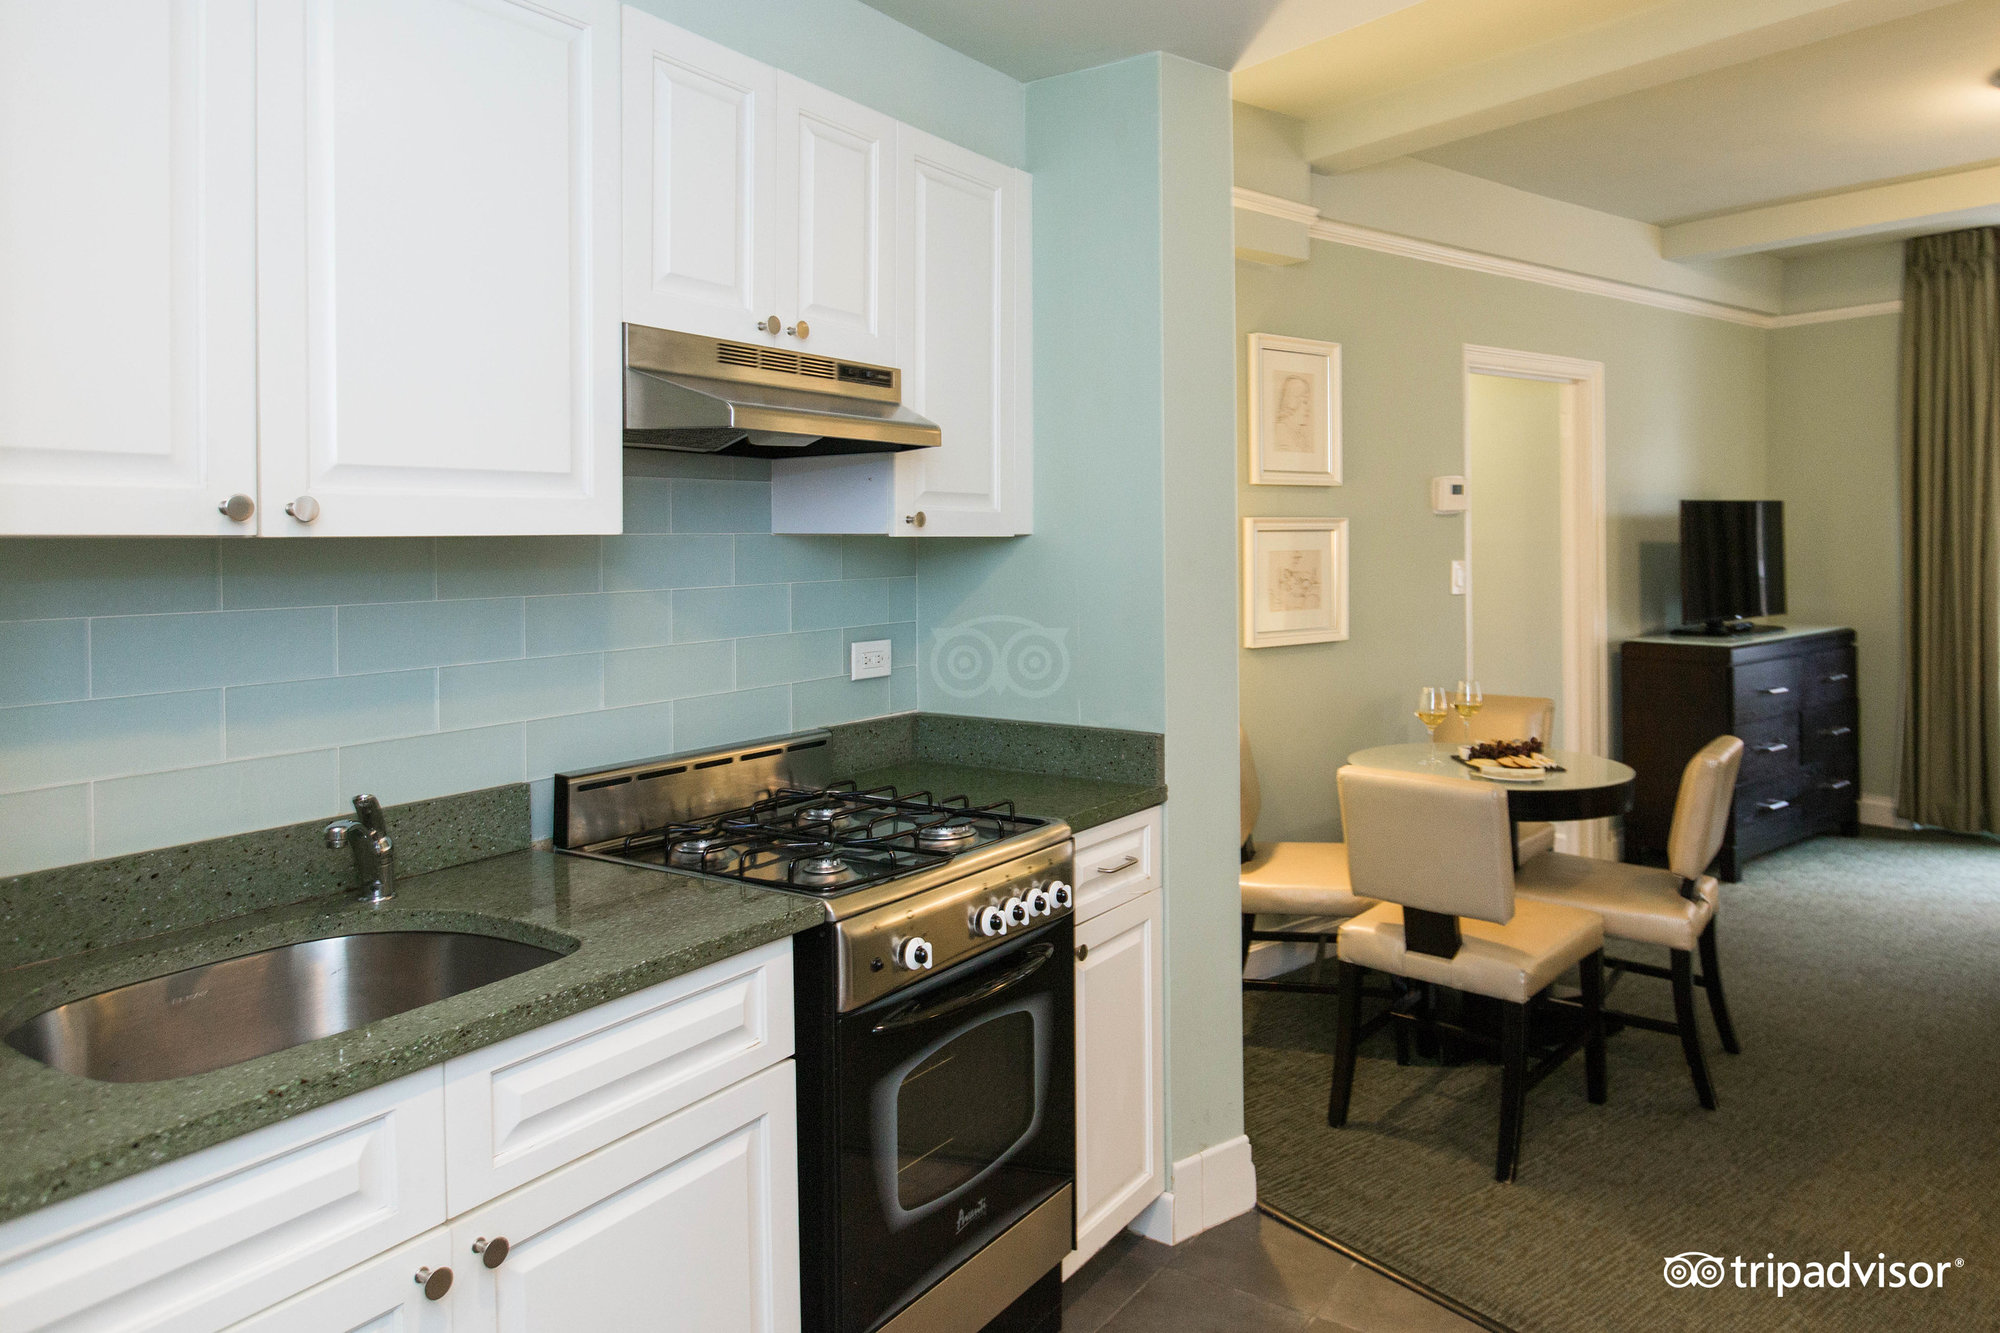 Book hotels with kitchenettes for extra